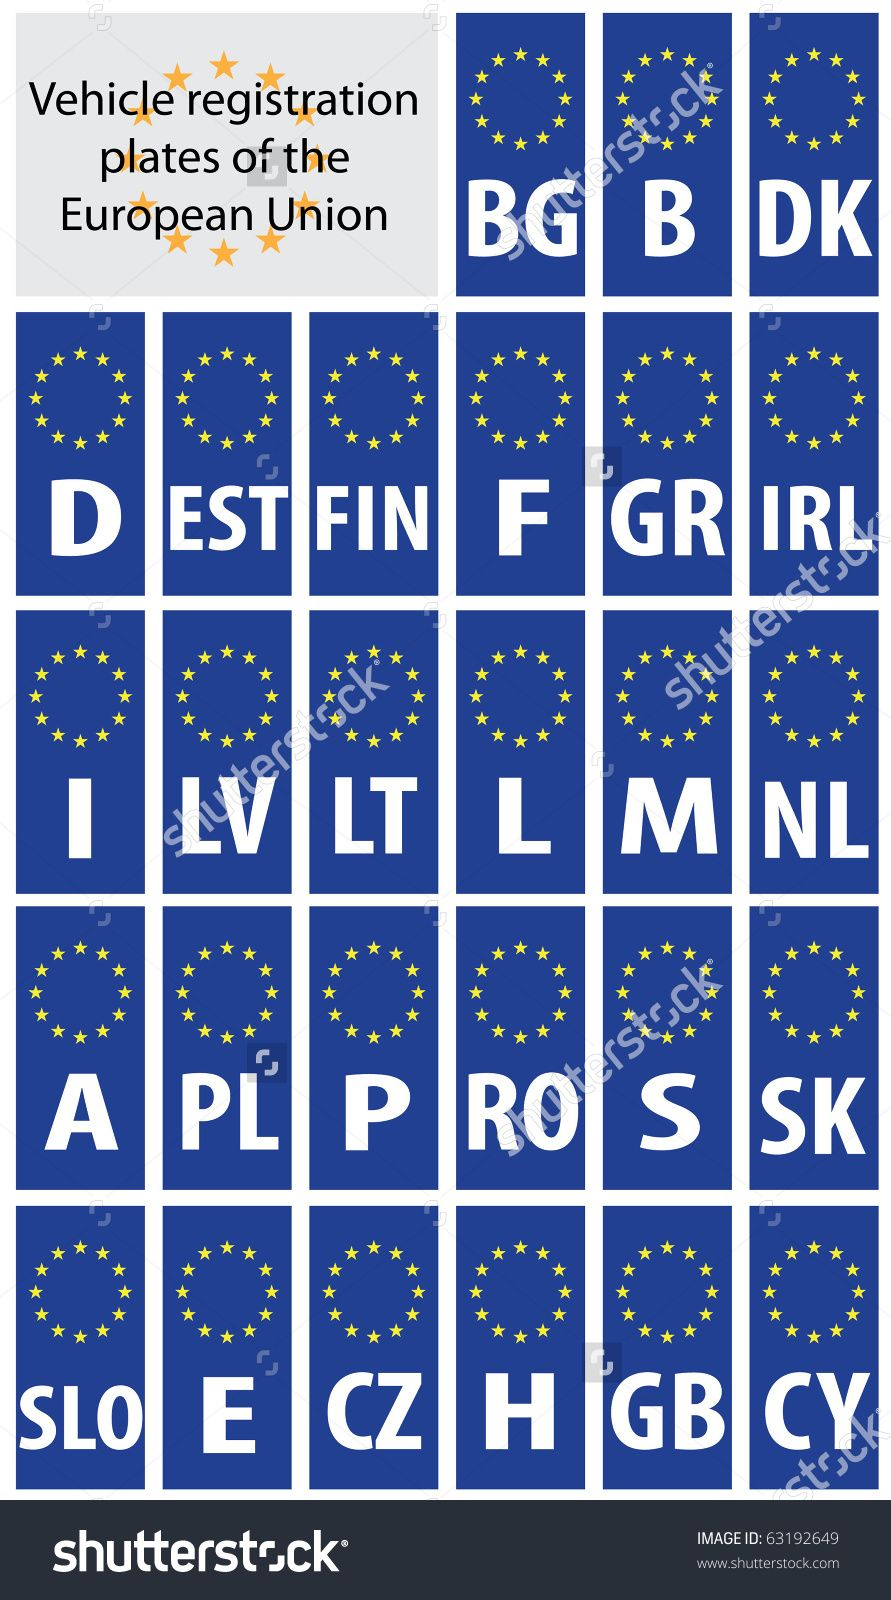 stock-vector-vehicle-registration-plates-of-european-union-states ...